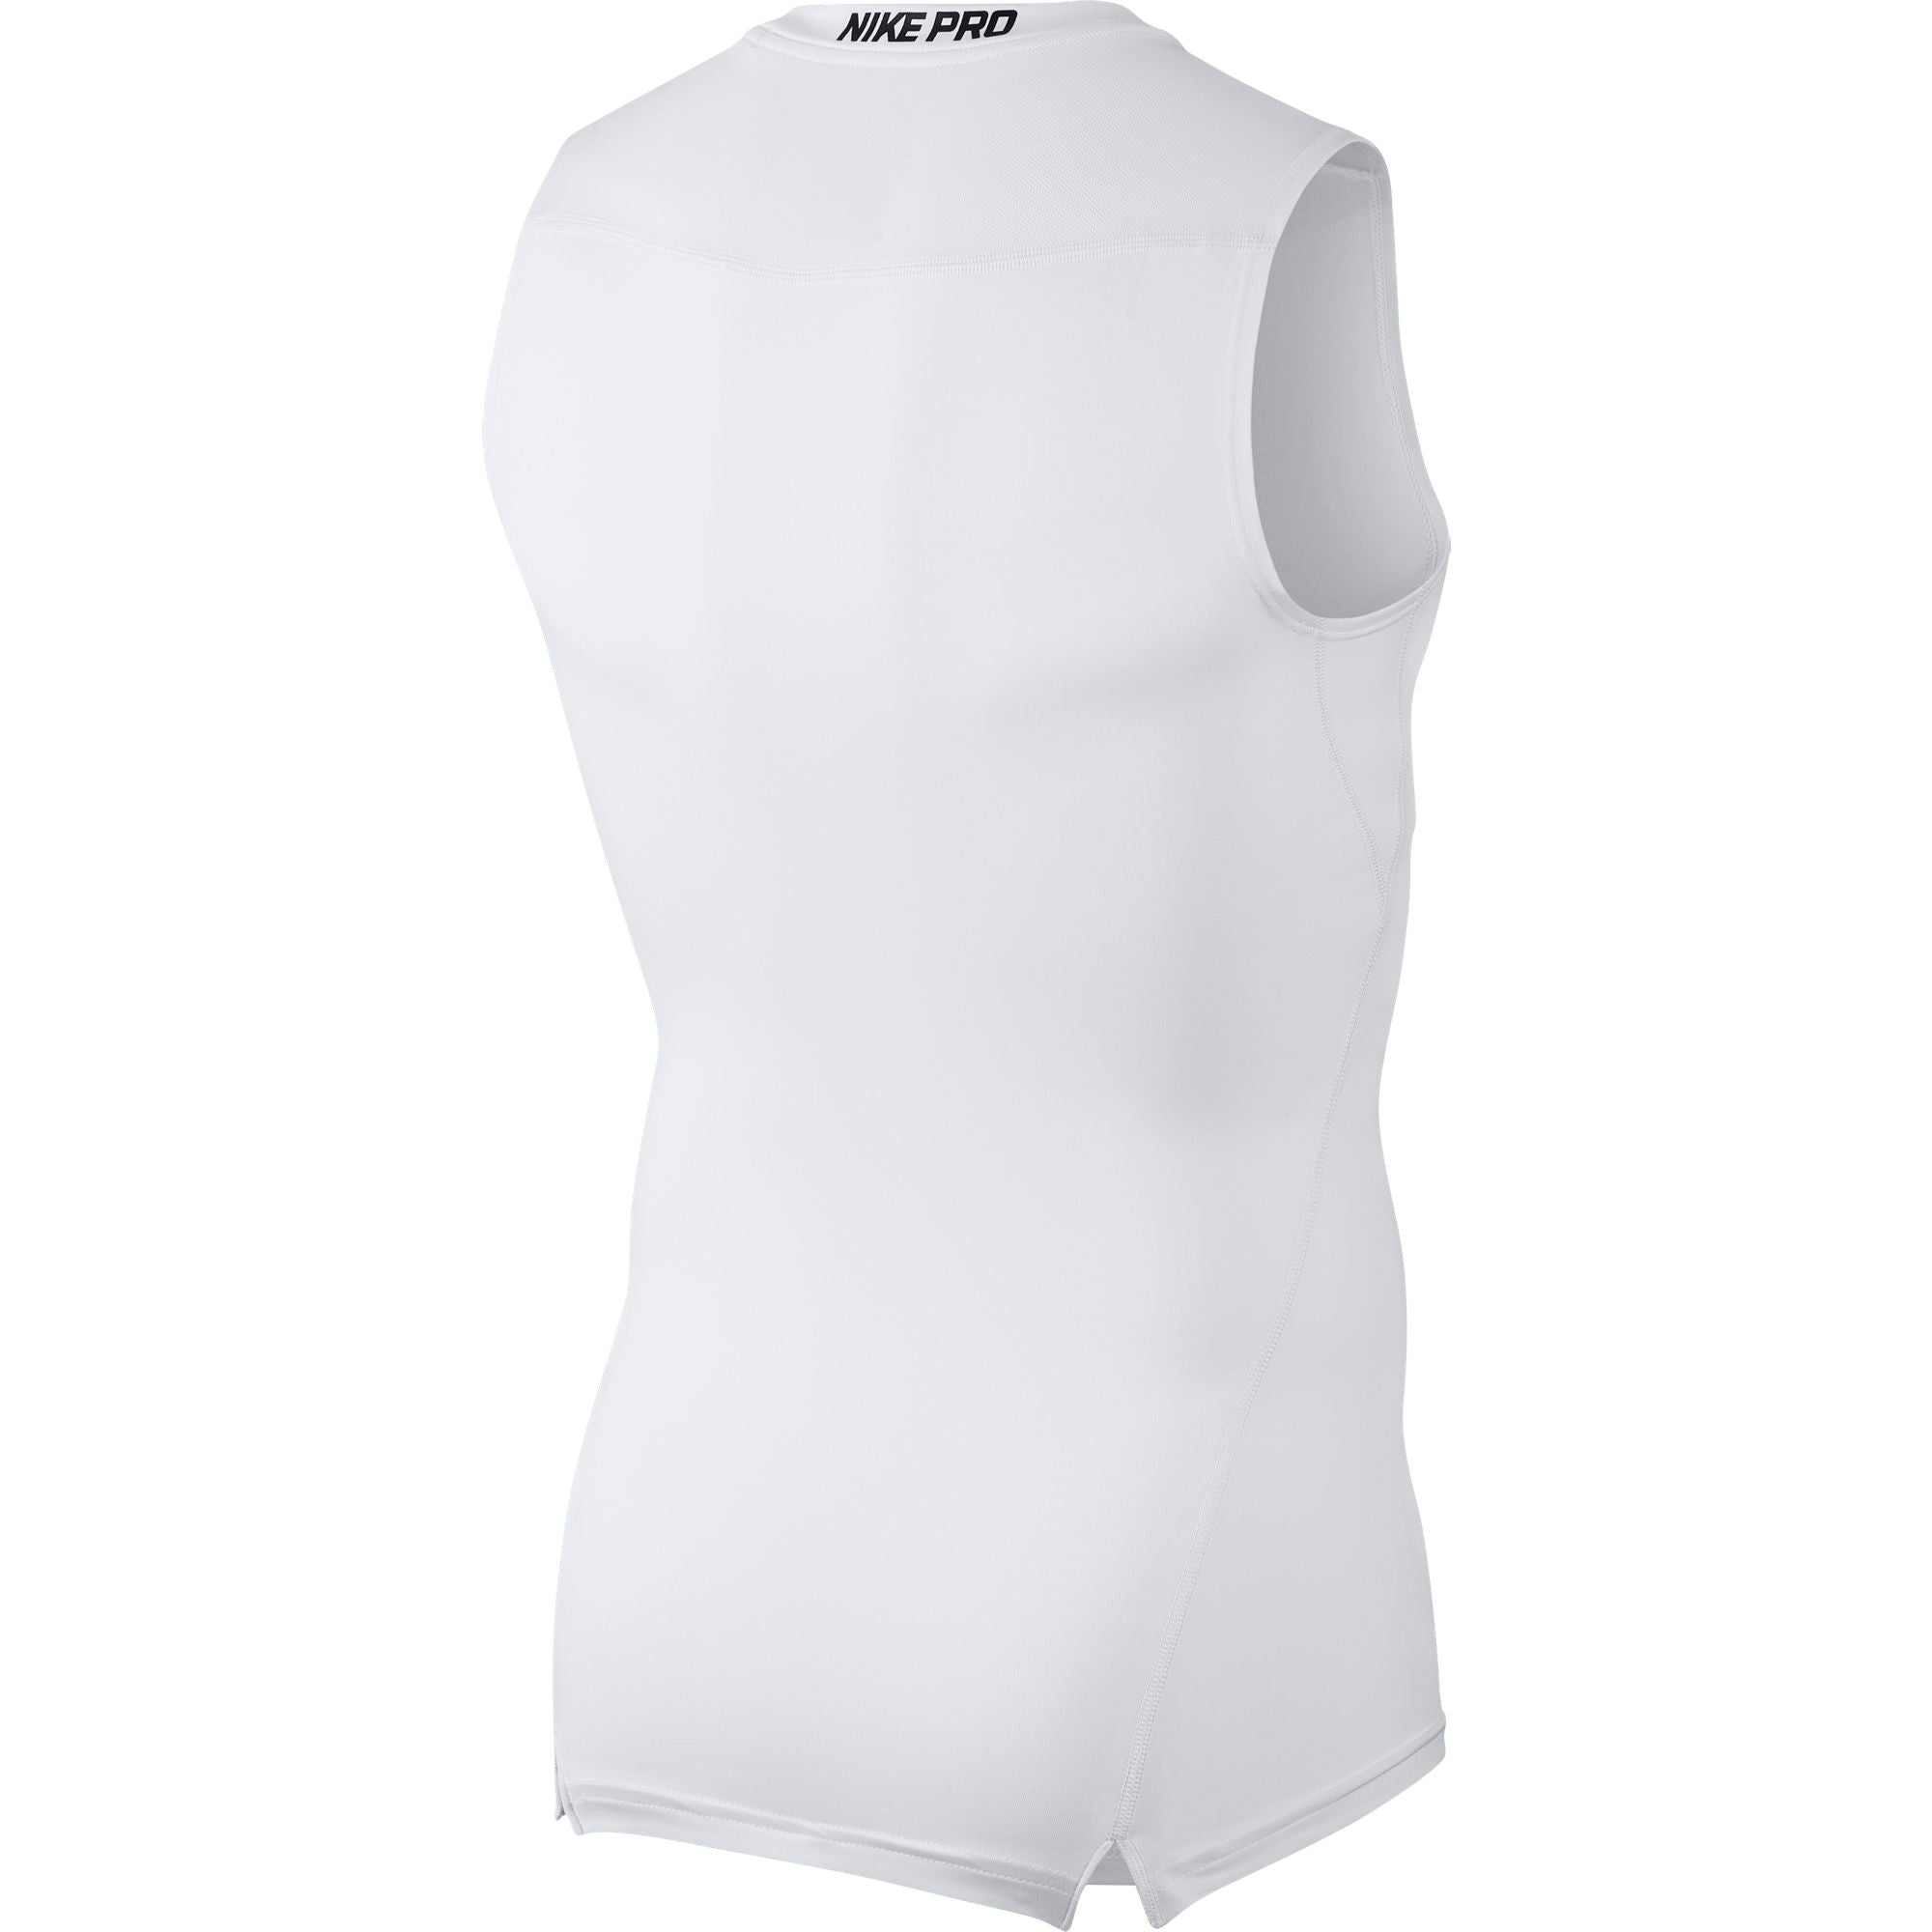 Nike Pro Base Layer Top - White/Black